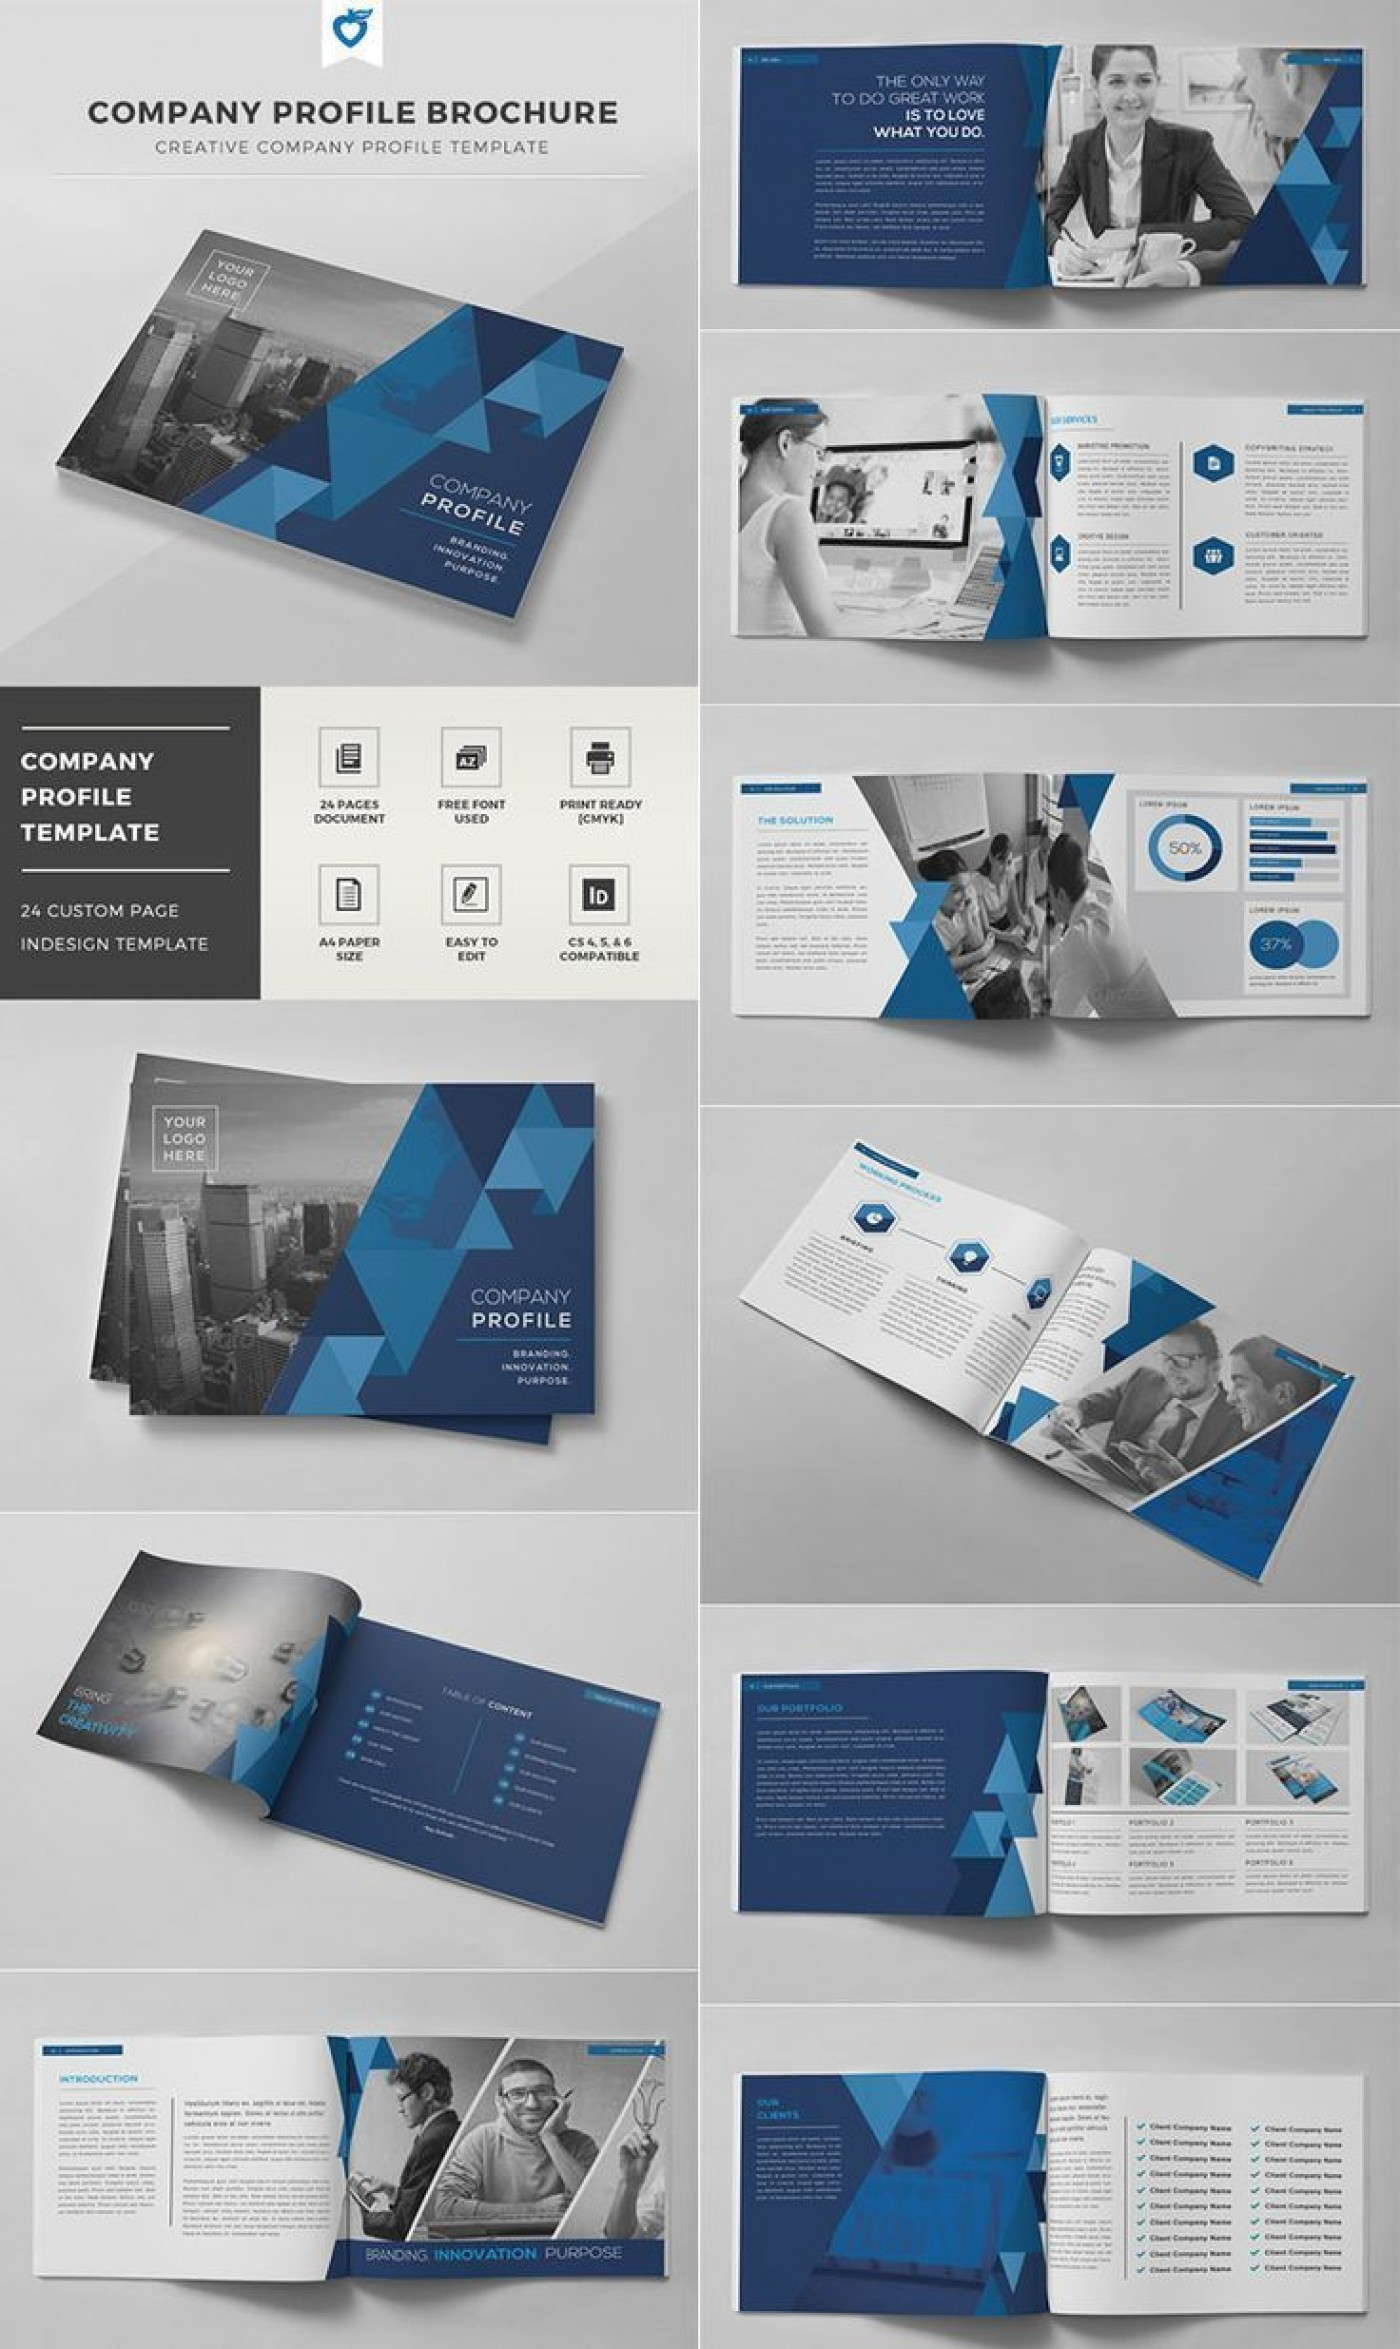 003 Astounding Busines Brochure Design Template Free Download Inspiration 1400